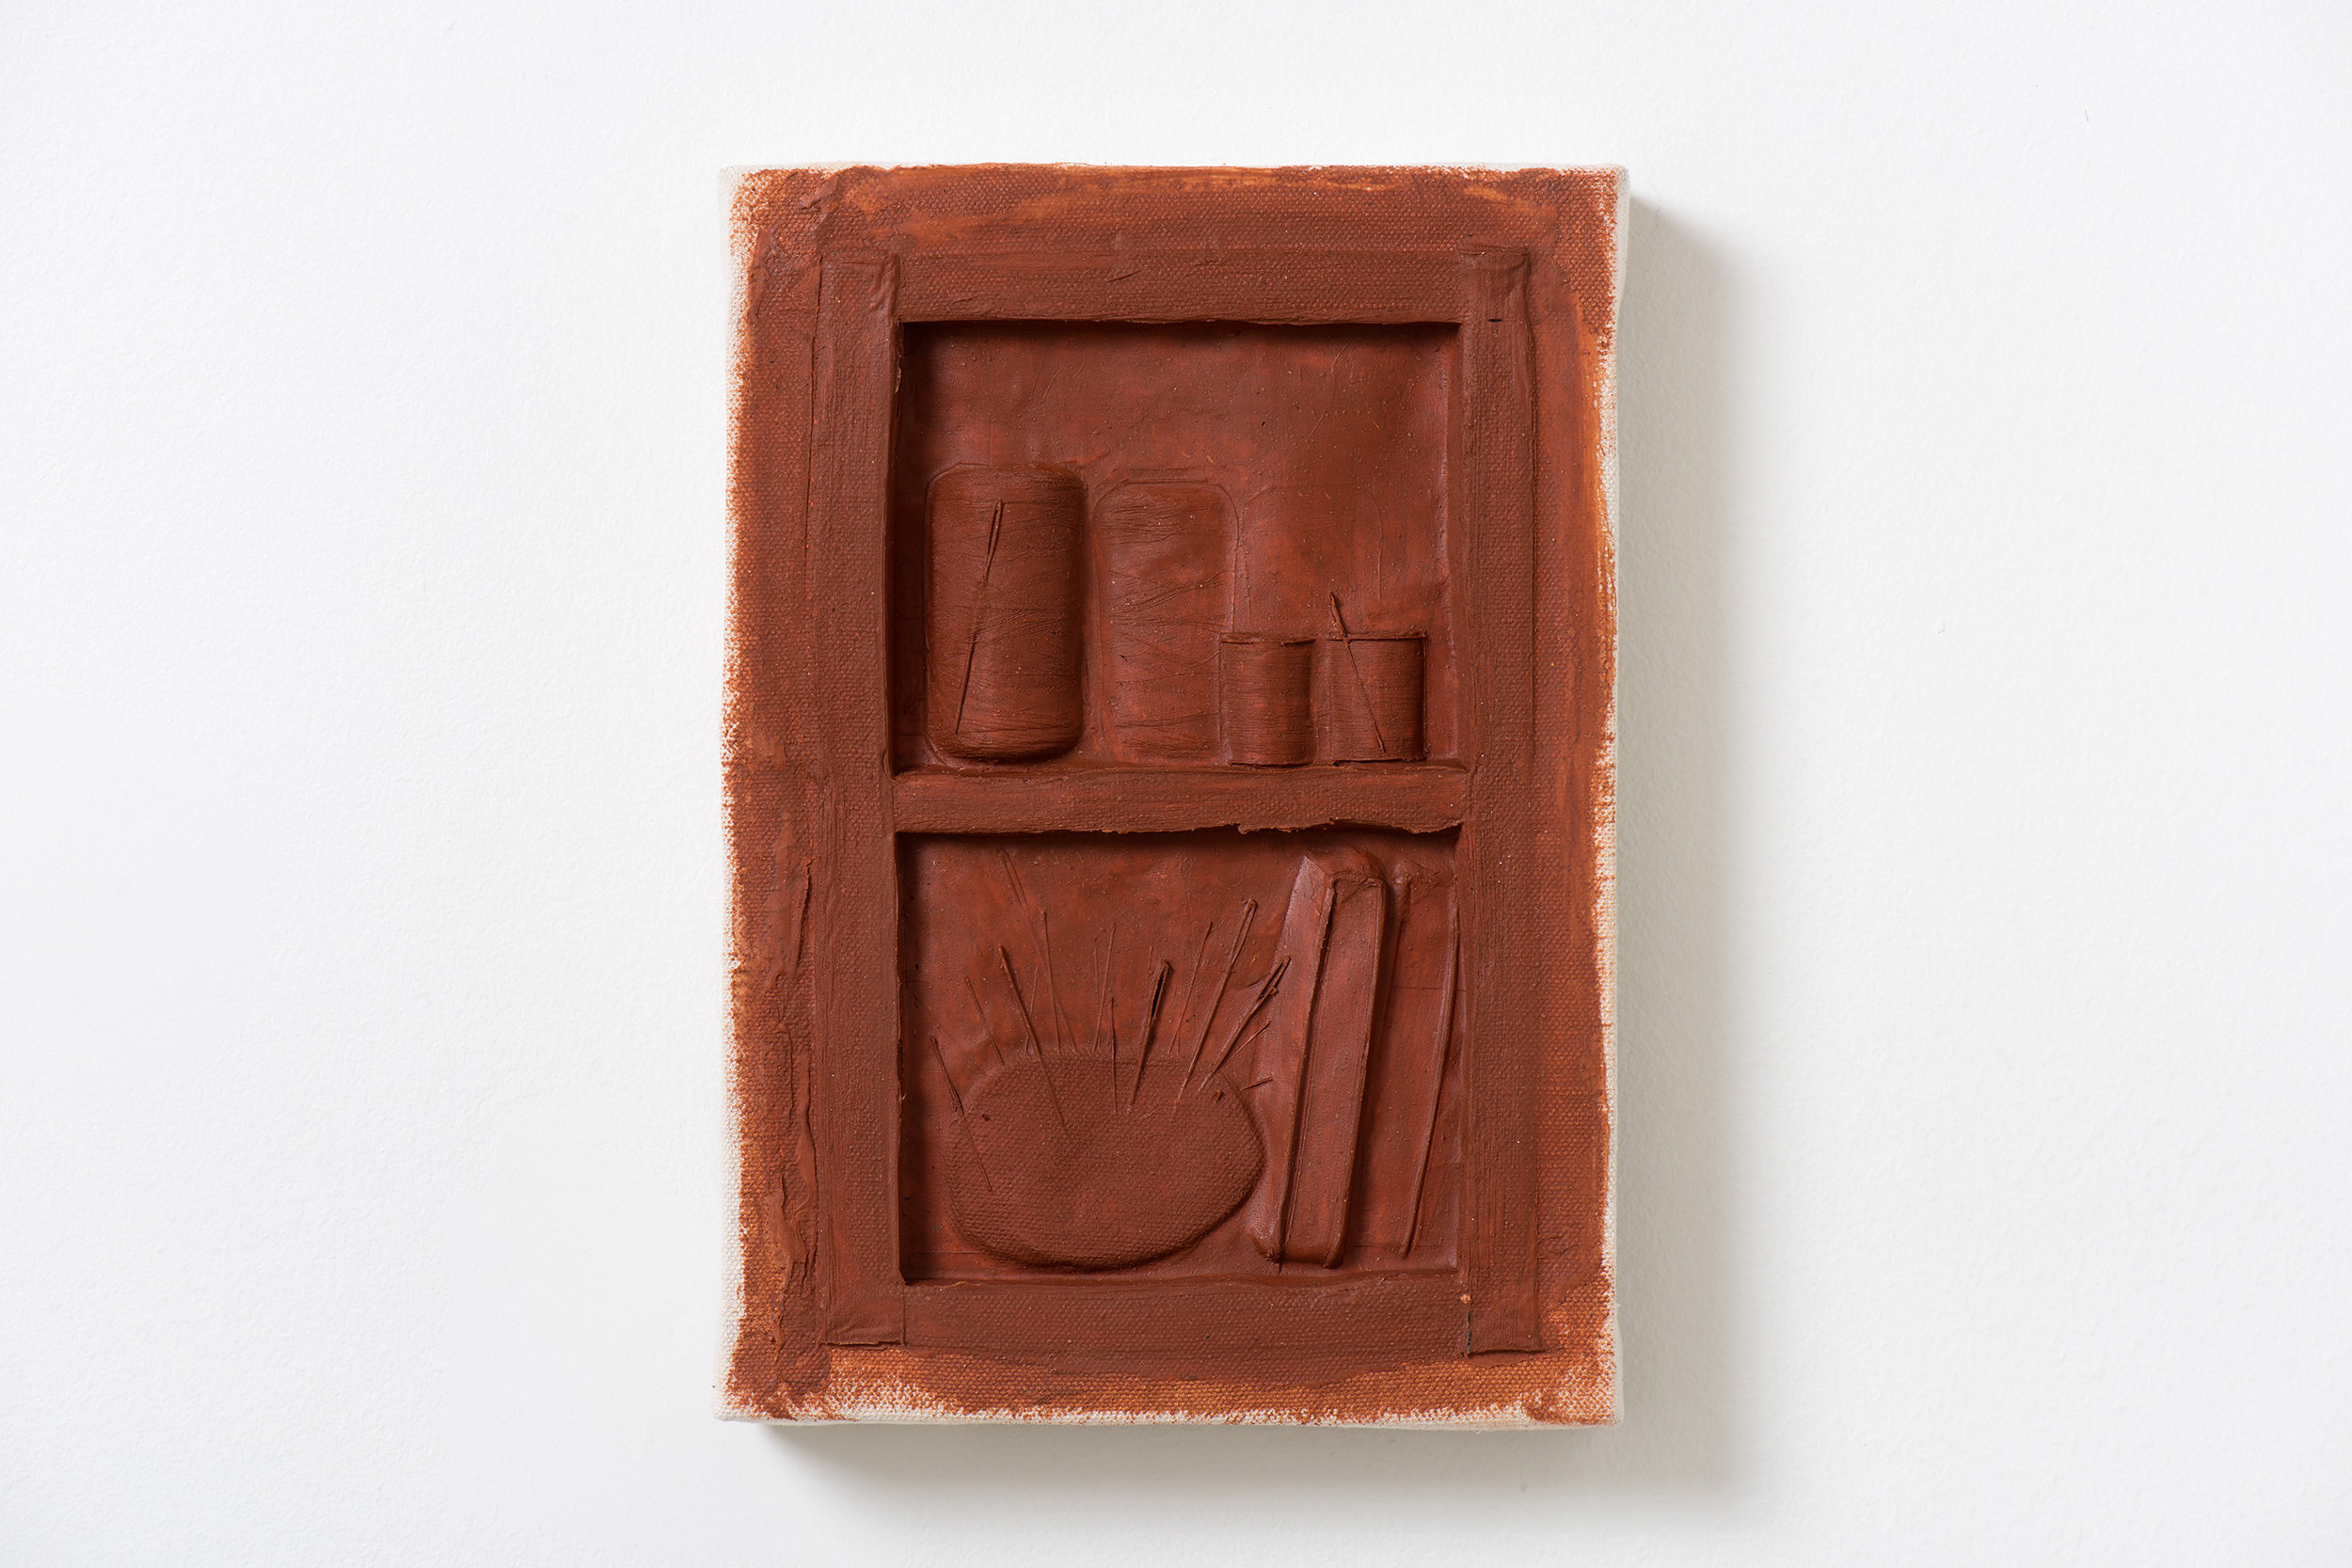 Anthony Miserendino  Thread Cabinet , 2018 Acrylic and canvas 11 3/4 x 8 1/4 x 13 3/4 inches